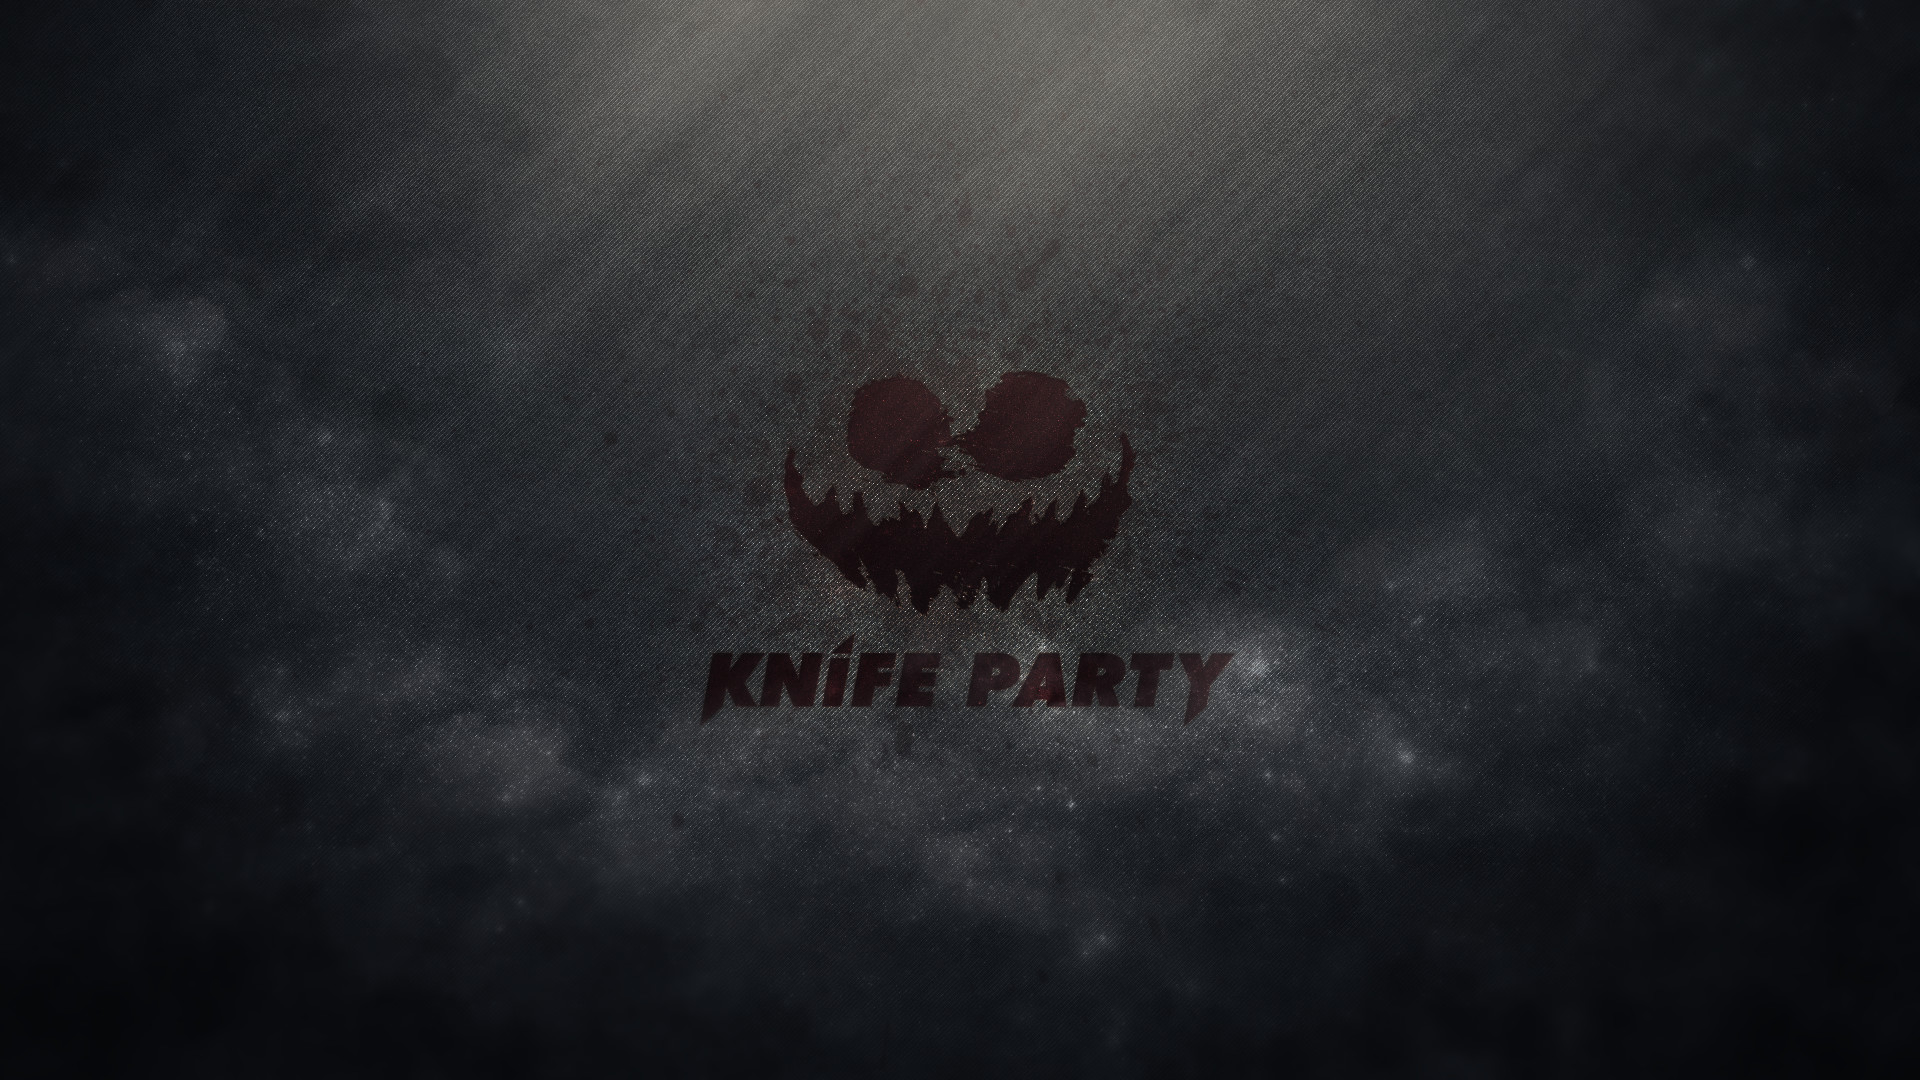 1920x1080 Photo Collection: PJI.821 Knife Party HD Pictures, NMgnCP